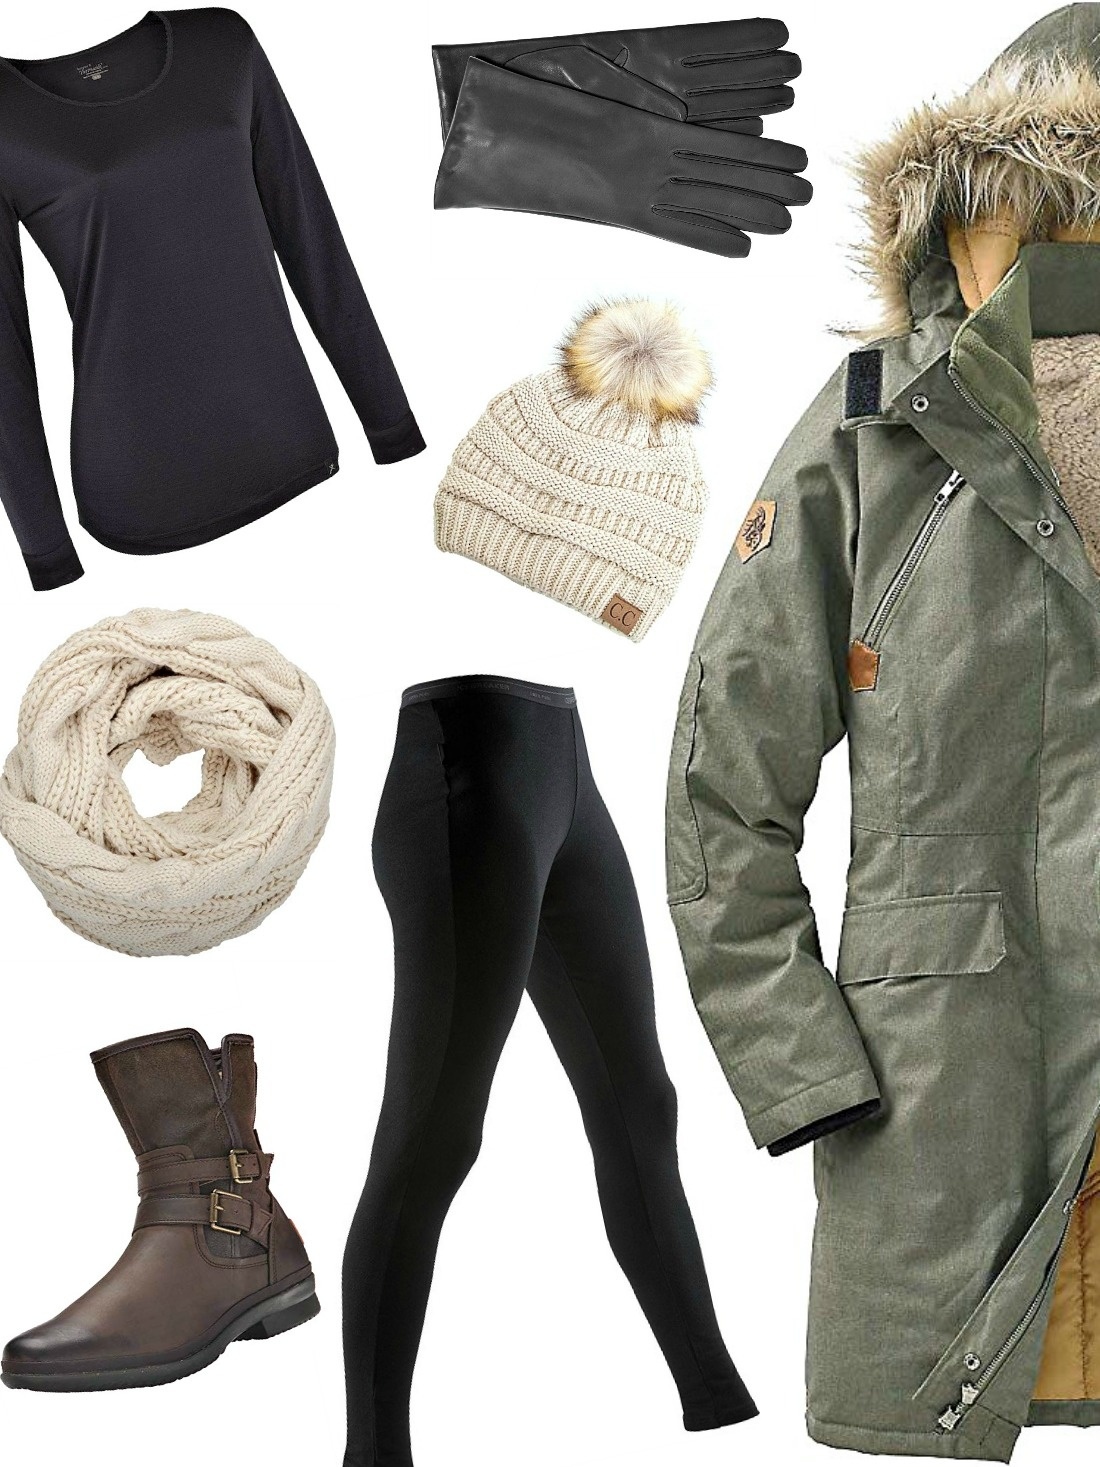 6a7cc215abb45 Winter Fashion Essentials  Surviving Snowy Weather in Cute and Cozy Gear